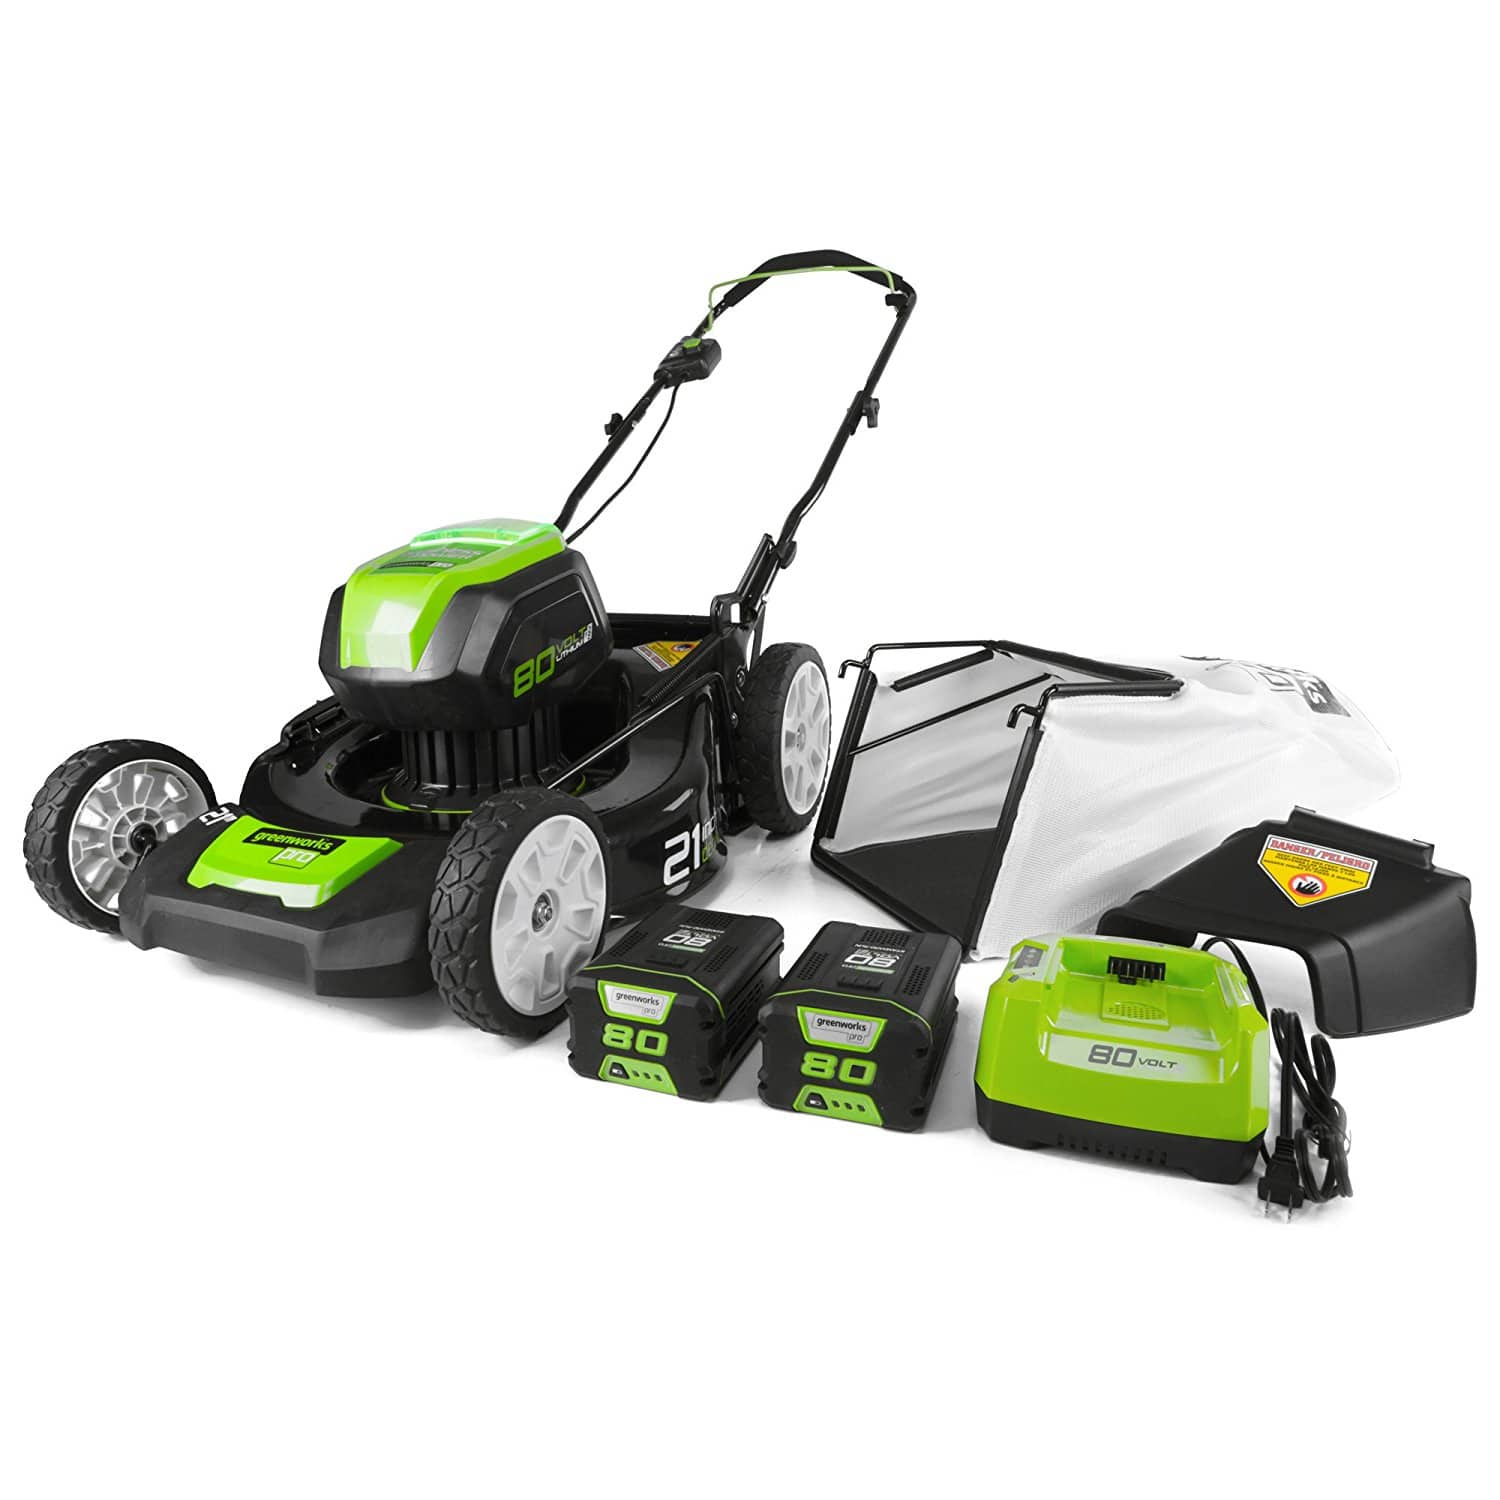 "GreenWorks Pro 80V 21"" Cordless Lawn Mower w 2x Batteries & Charger"